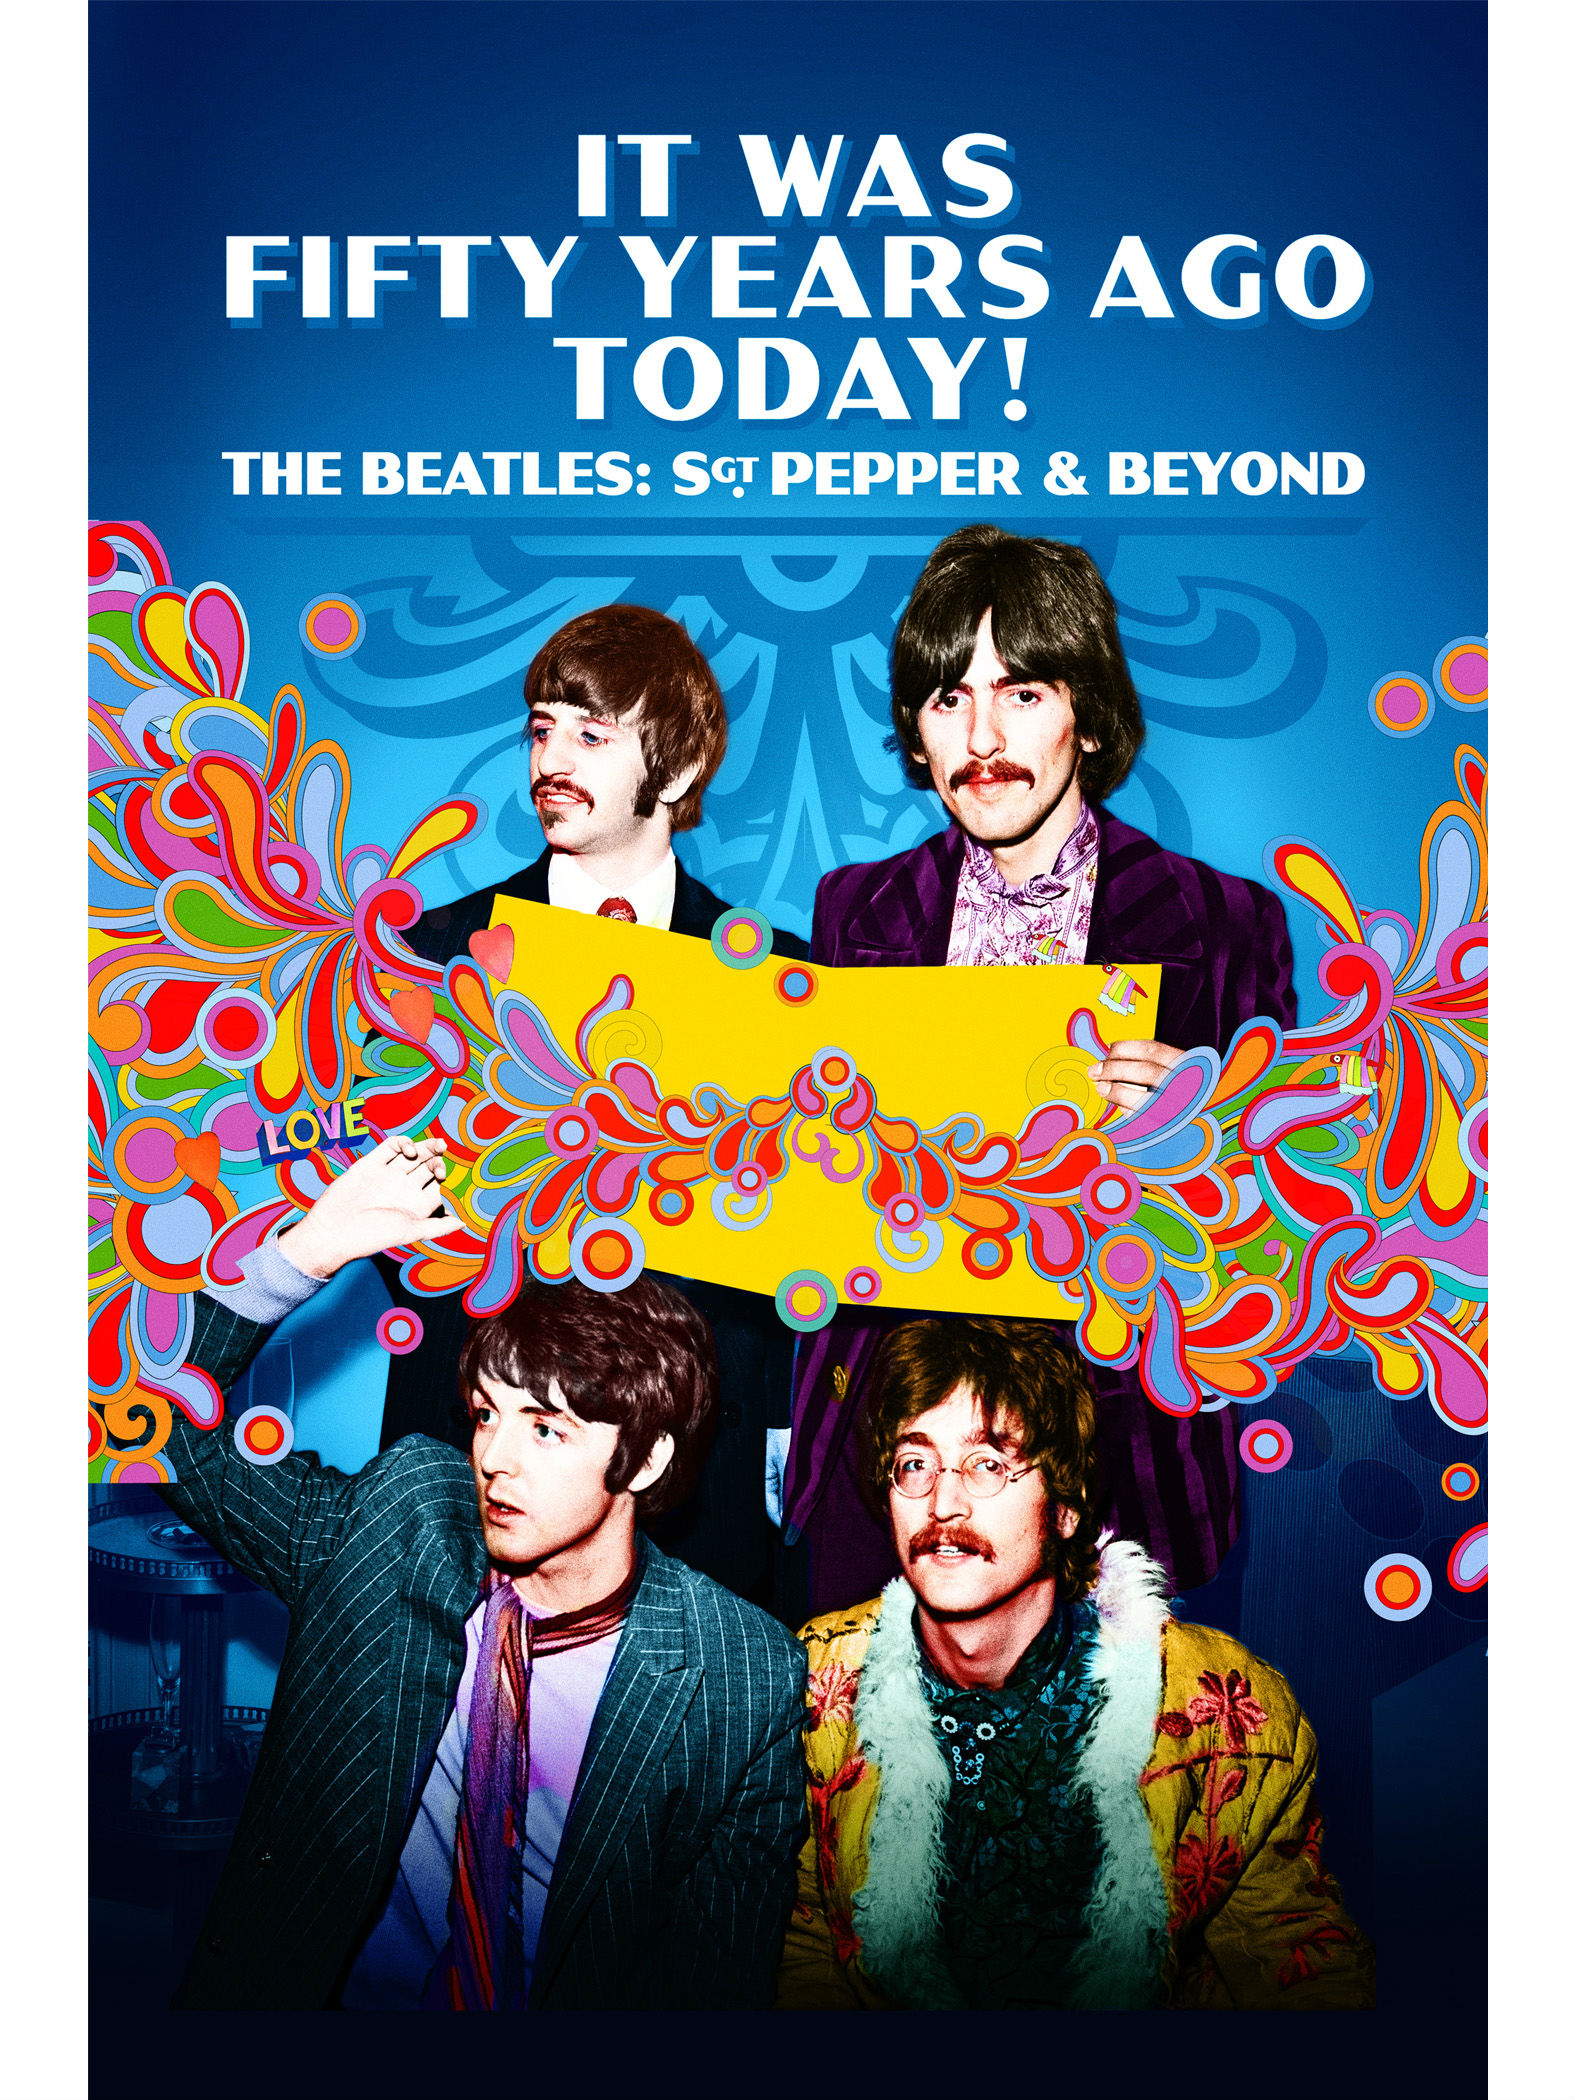 The Beatles - 'It Was Fifty Years Ago Today!'